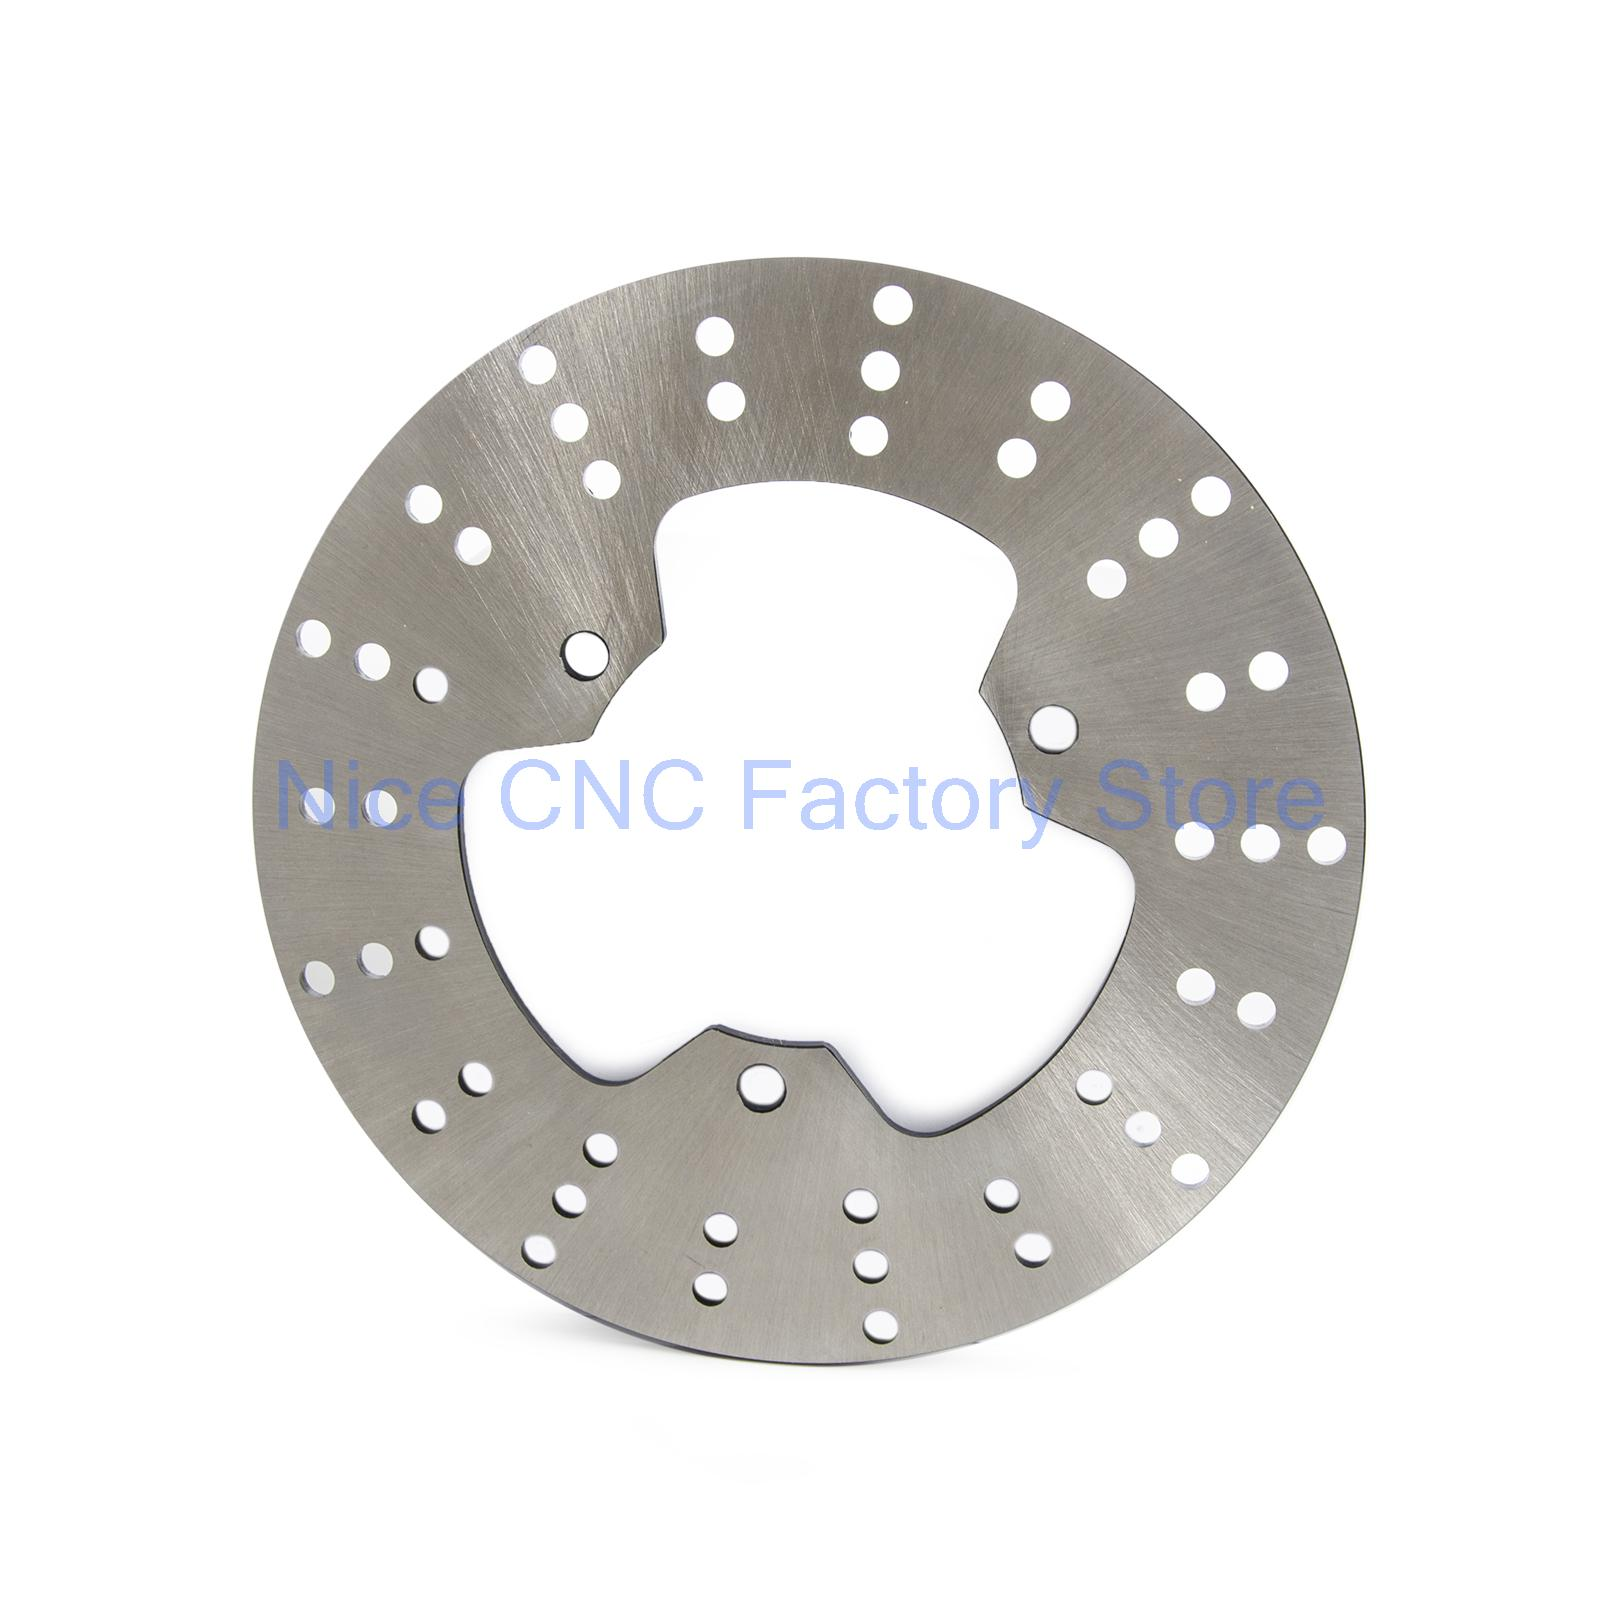 Motorcycle Rear Rotor Brake Disc For Yamaha TZR125 TZR125R TDR125R TZR150 SDR200 FX250 Zeal FZR250R TZ250 TDR250 TZR250 keoghs motorcycle brake disc brake rotor floating 260mm 82mm diameter cnc for yamaha scooter bws cygnus front disc replace